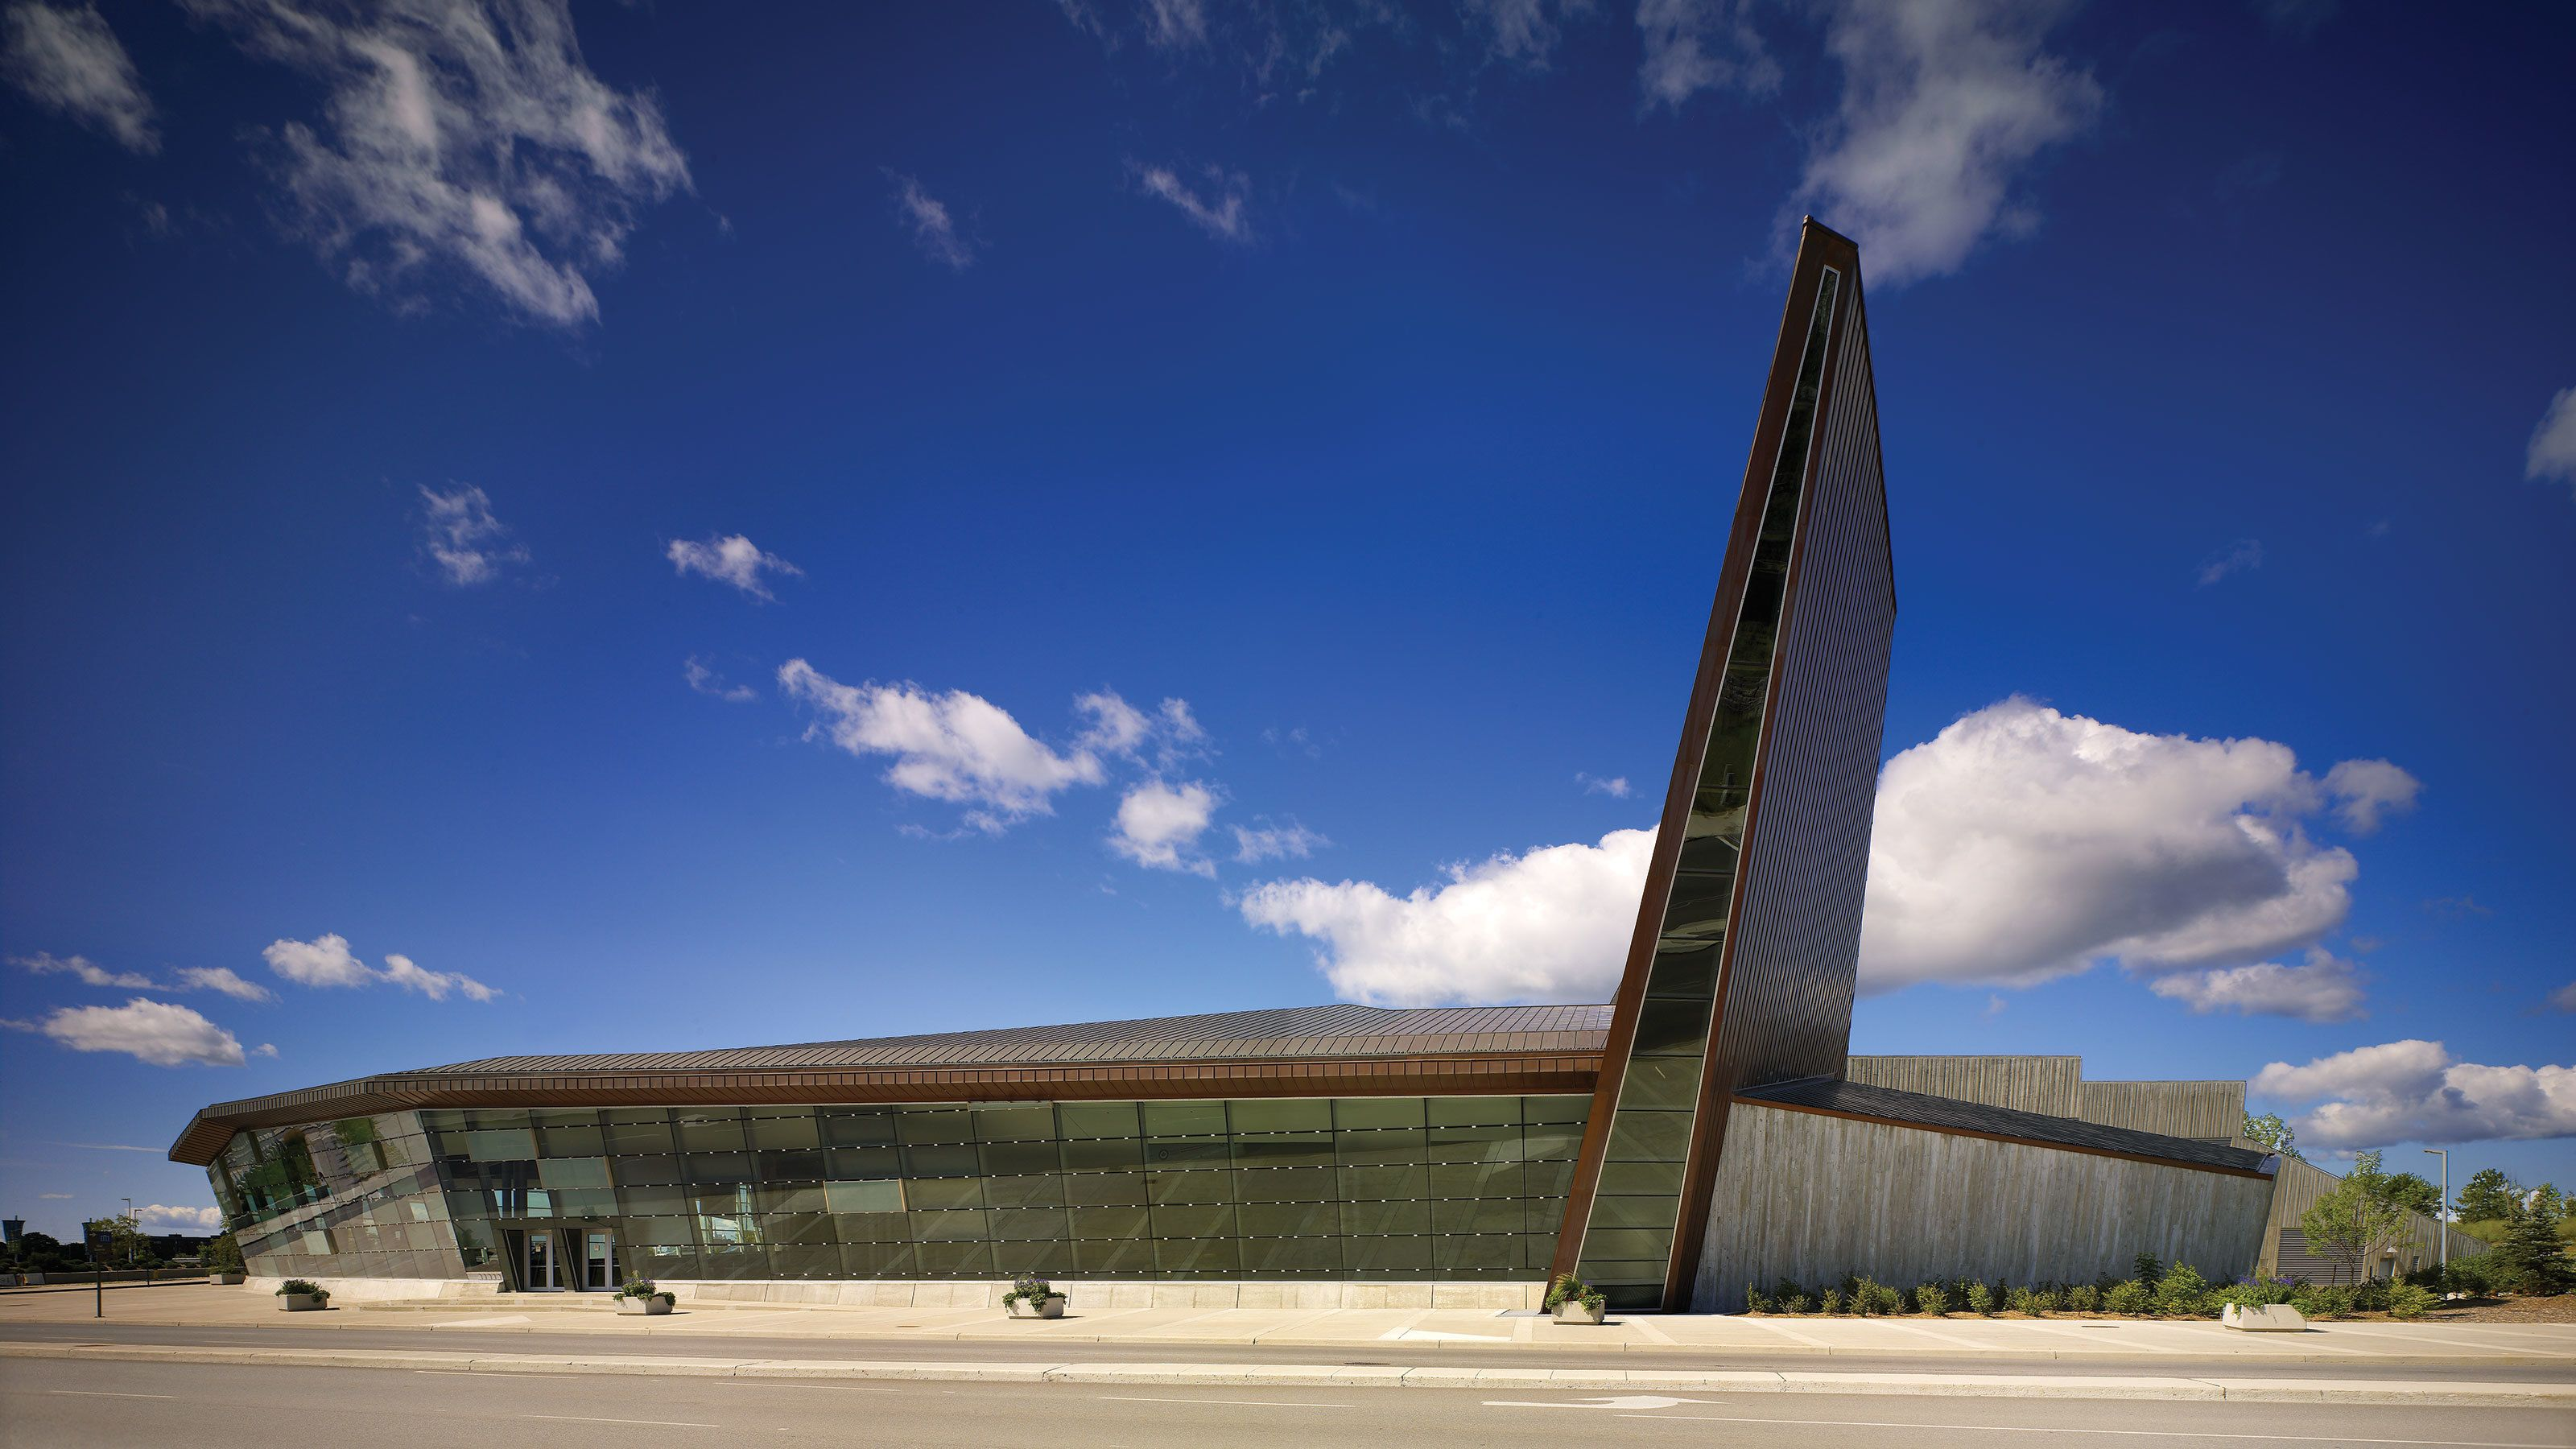 Exterior of the Canadian War Museum in Ottawa